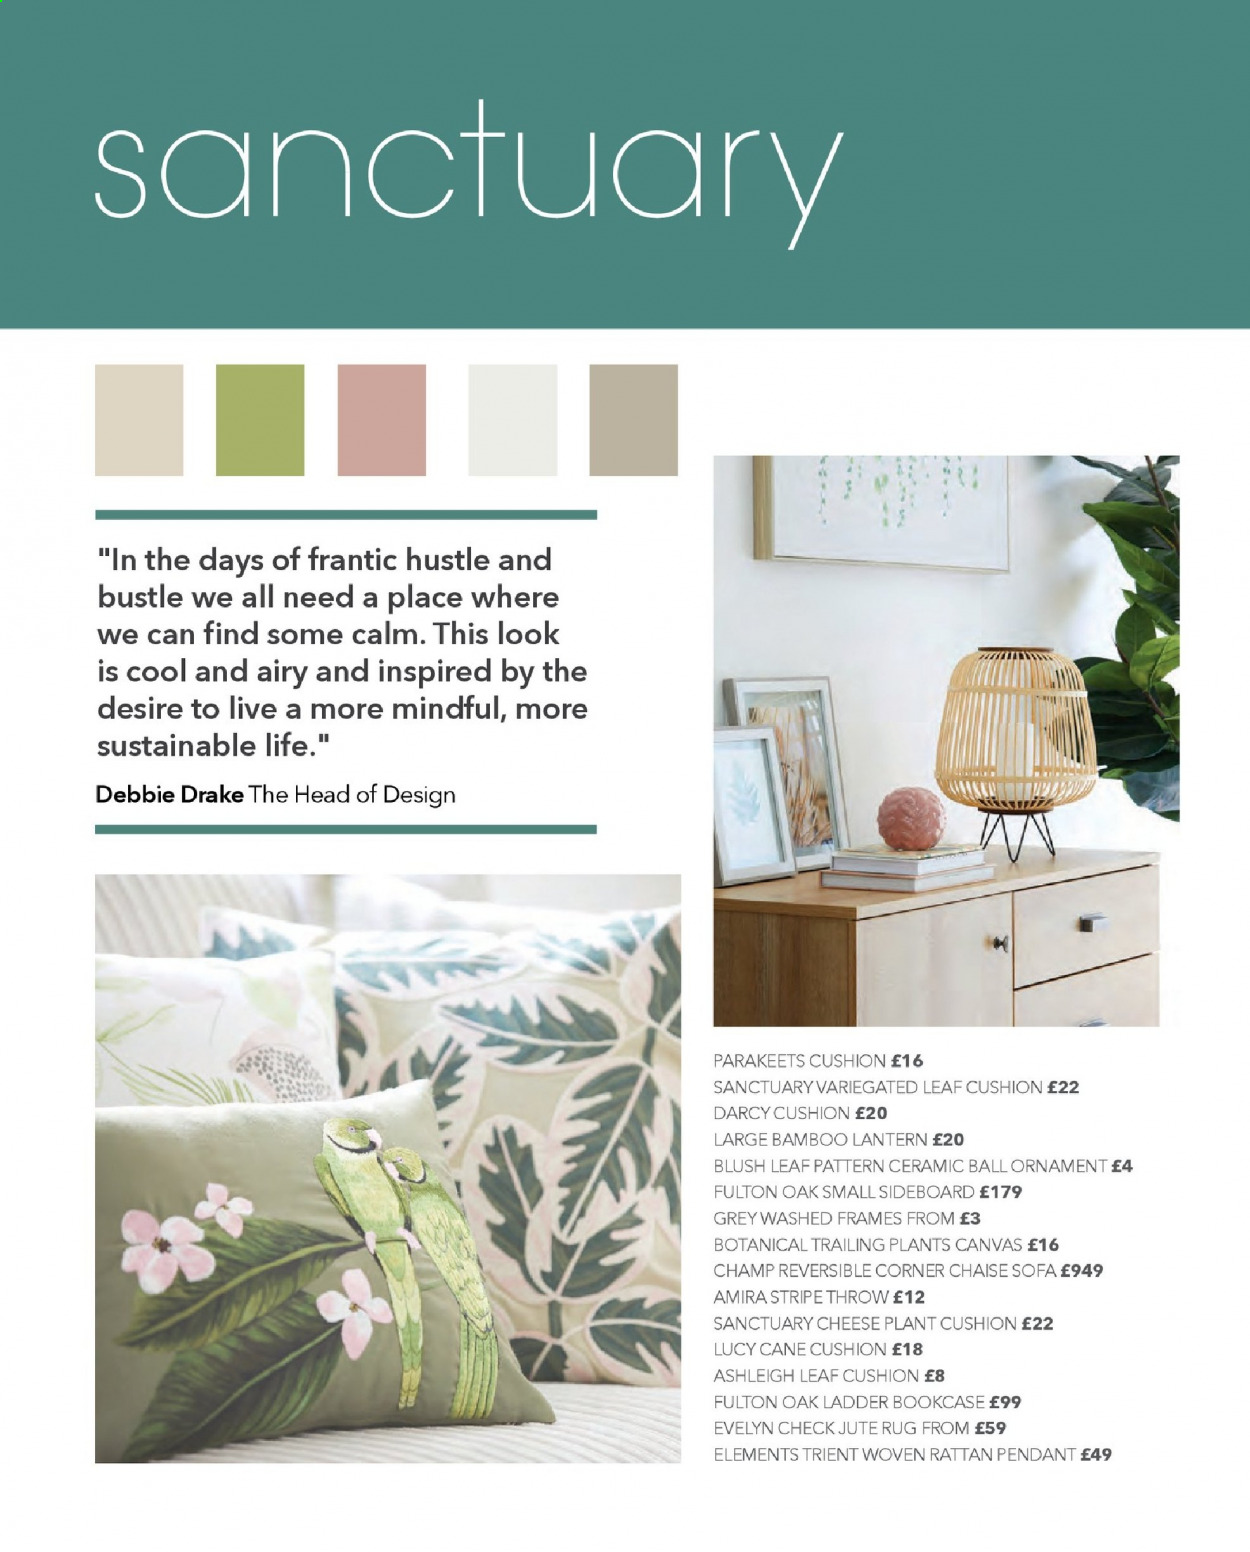 Dunelm offer  - Sales products - bamboo, bookcase, cushion, frame, ladder, rug, sideboard, sofa, throw, head, chaise, pendant, ornament, cheese, lantern, ball. Page 4.